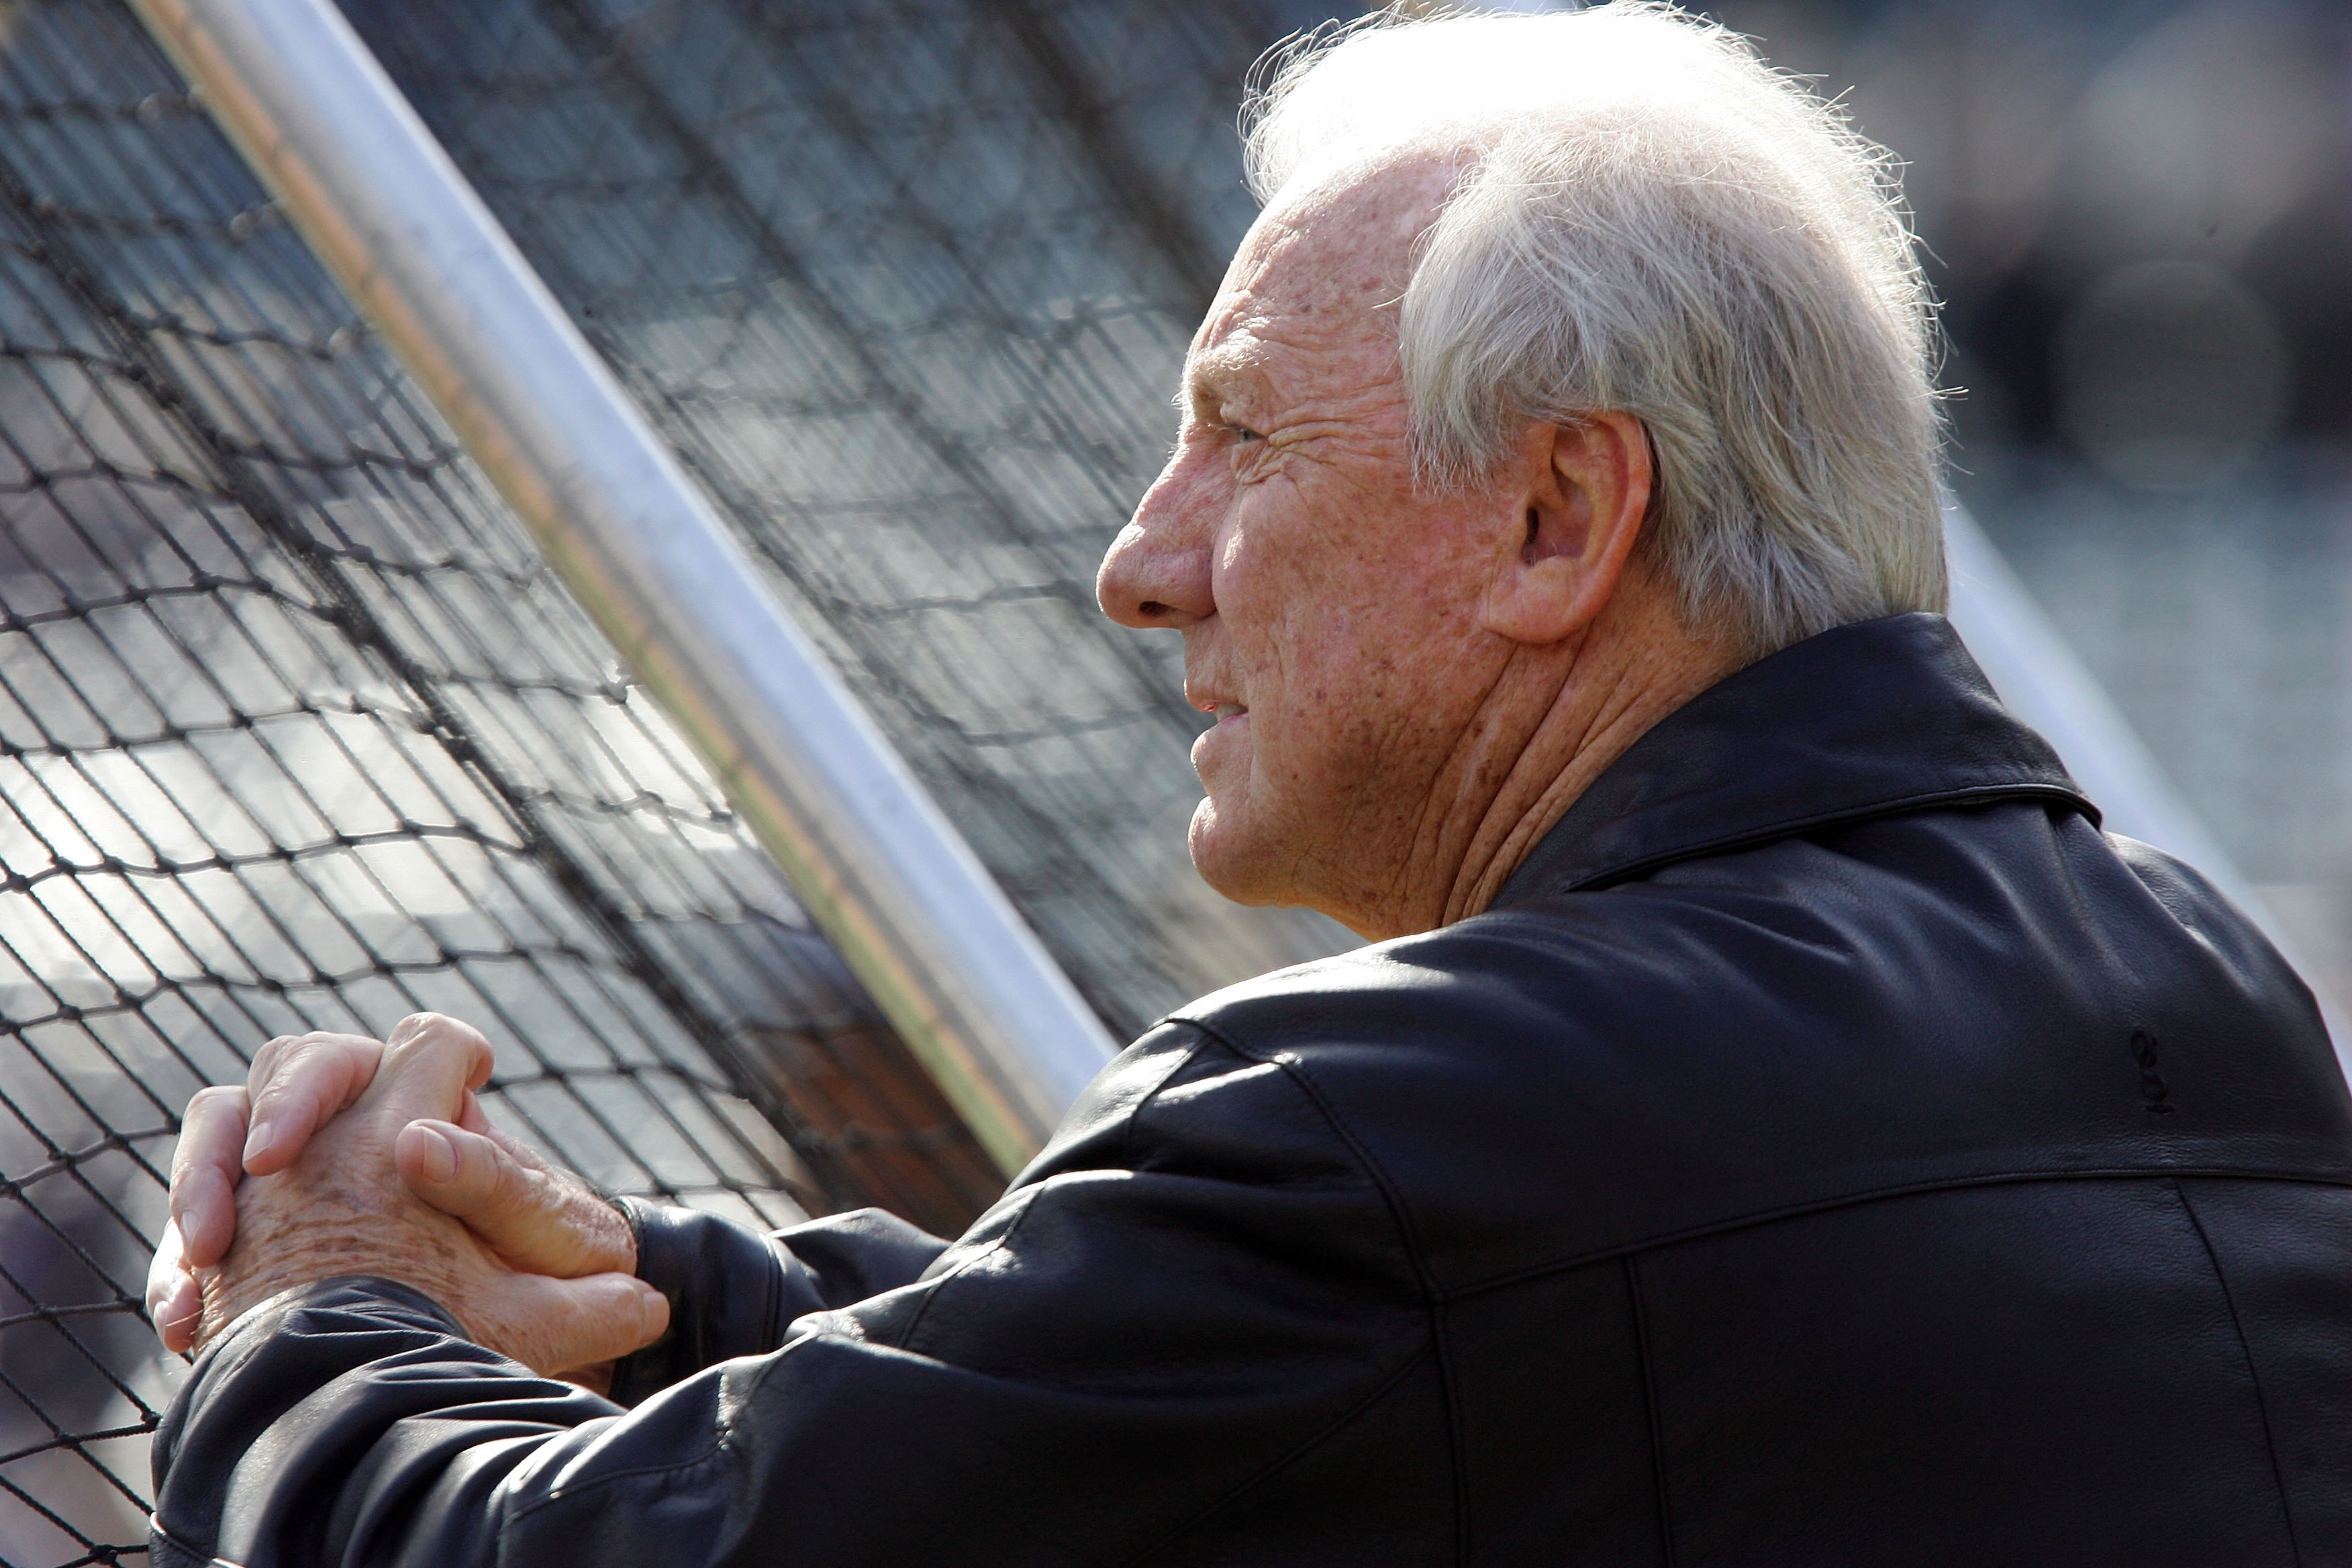 DETROIT - OCTOBER 14: Hall of Famer and former Detroit Tiger great Al Kaline watchess batting practice prior to the start of Game Four of the American League Championship Series between the Detroit Tigers and the Oakland Athletics October 14, 2006 at Comerica Park in Detroit, Michigan. (Photo by Jim McIsaac/Getty Images)